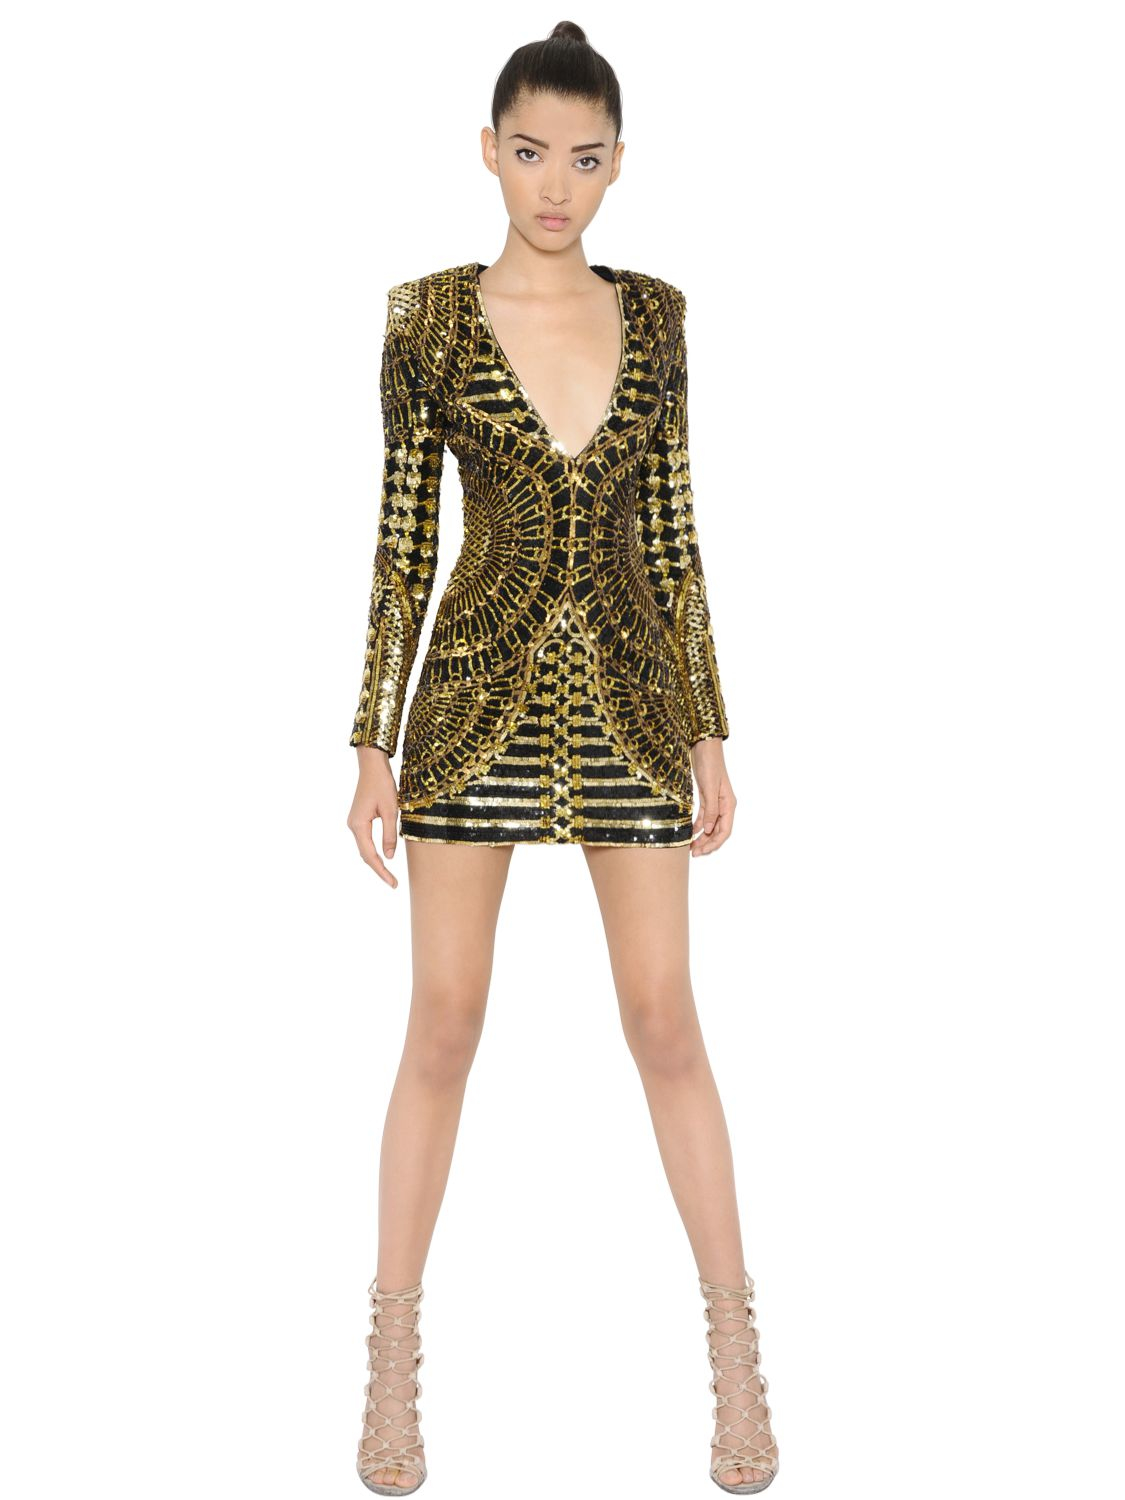 balmain blackgold sequined chiffon dress black product 0 096706270 normal